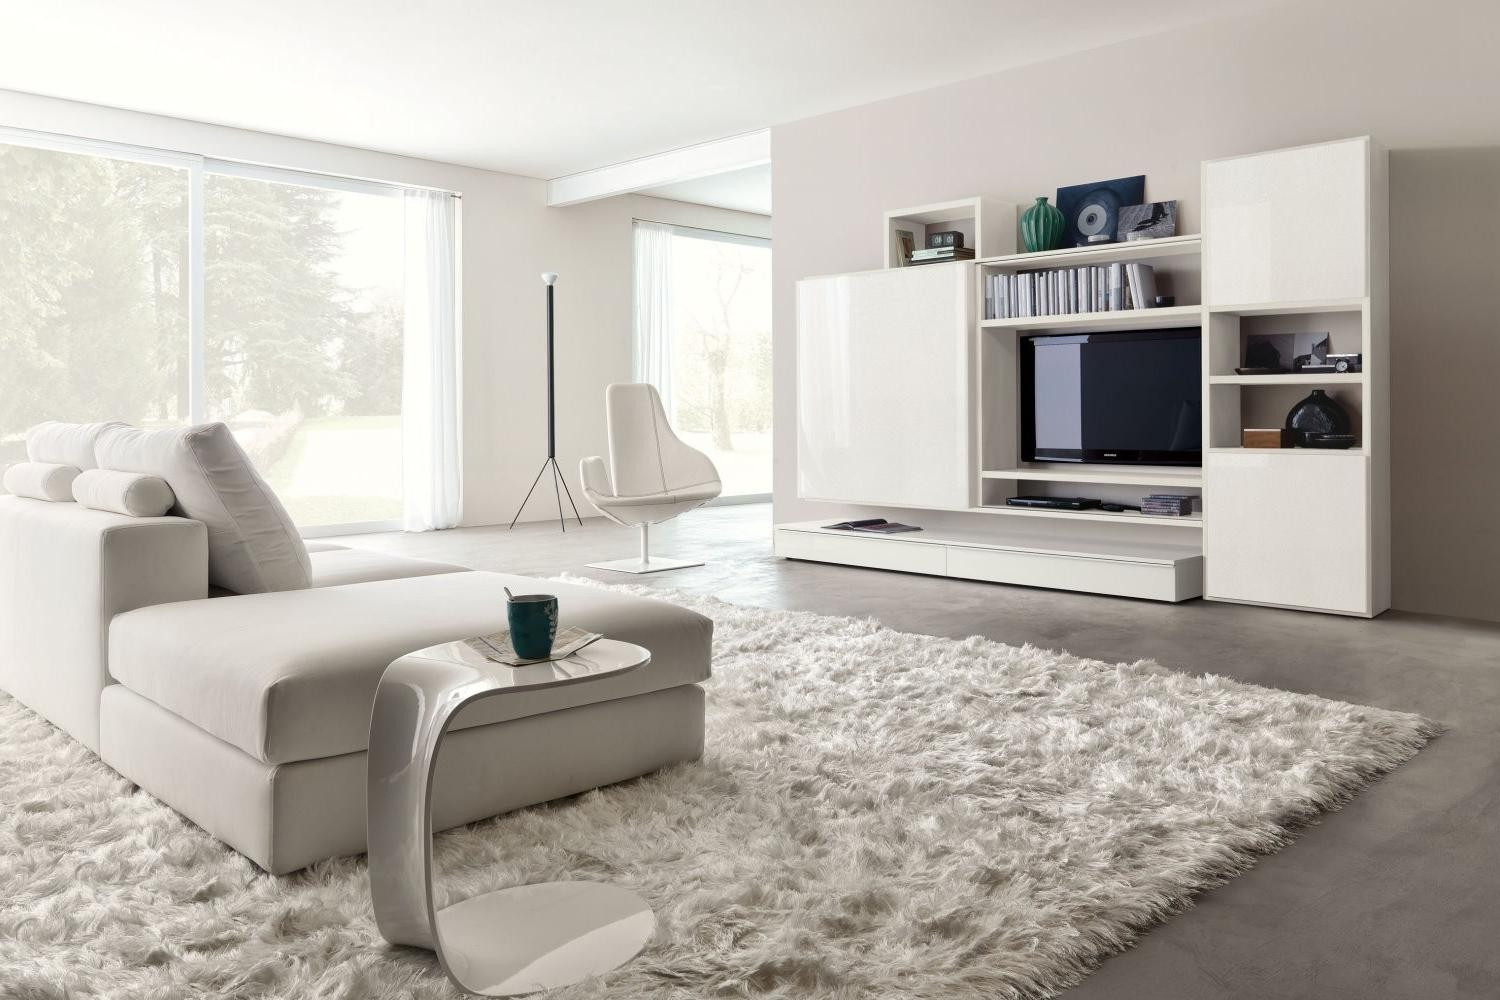 Best ideas about Living Room Rug Ideas . Save or Pin Where Should the Living Room Rug Be Now.